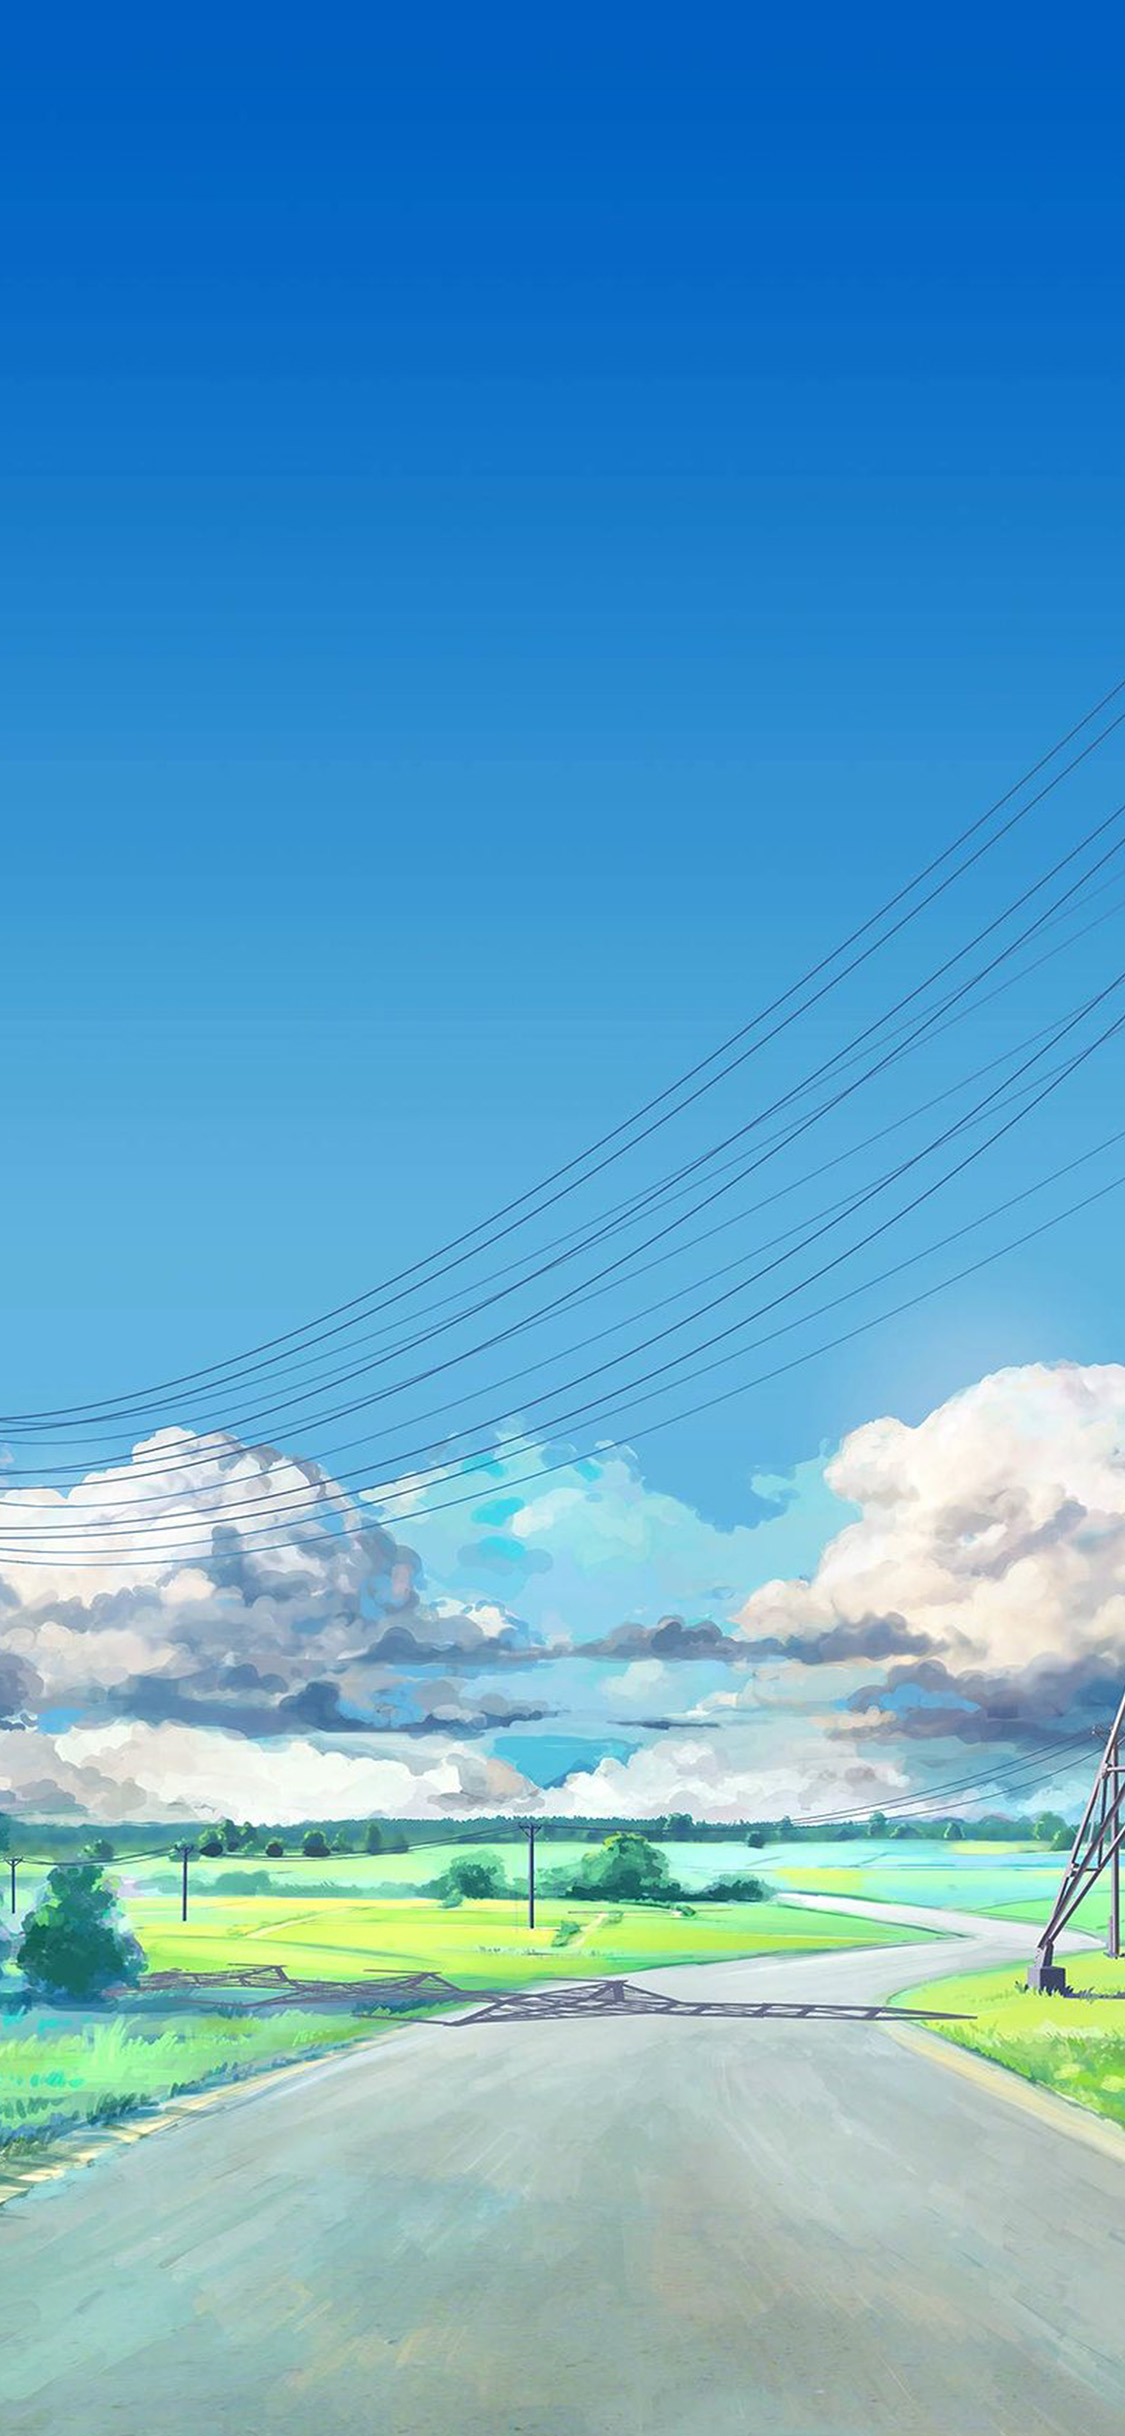 Sunny Sky Arsenic Art Illustration iPhone wallpaper